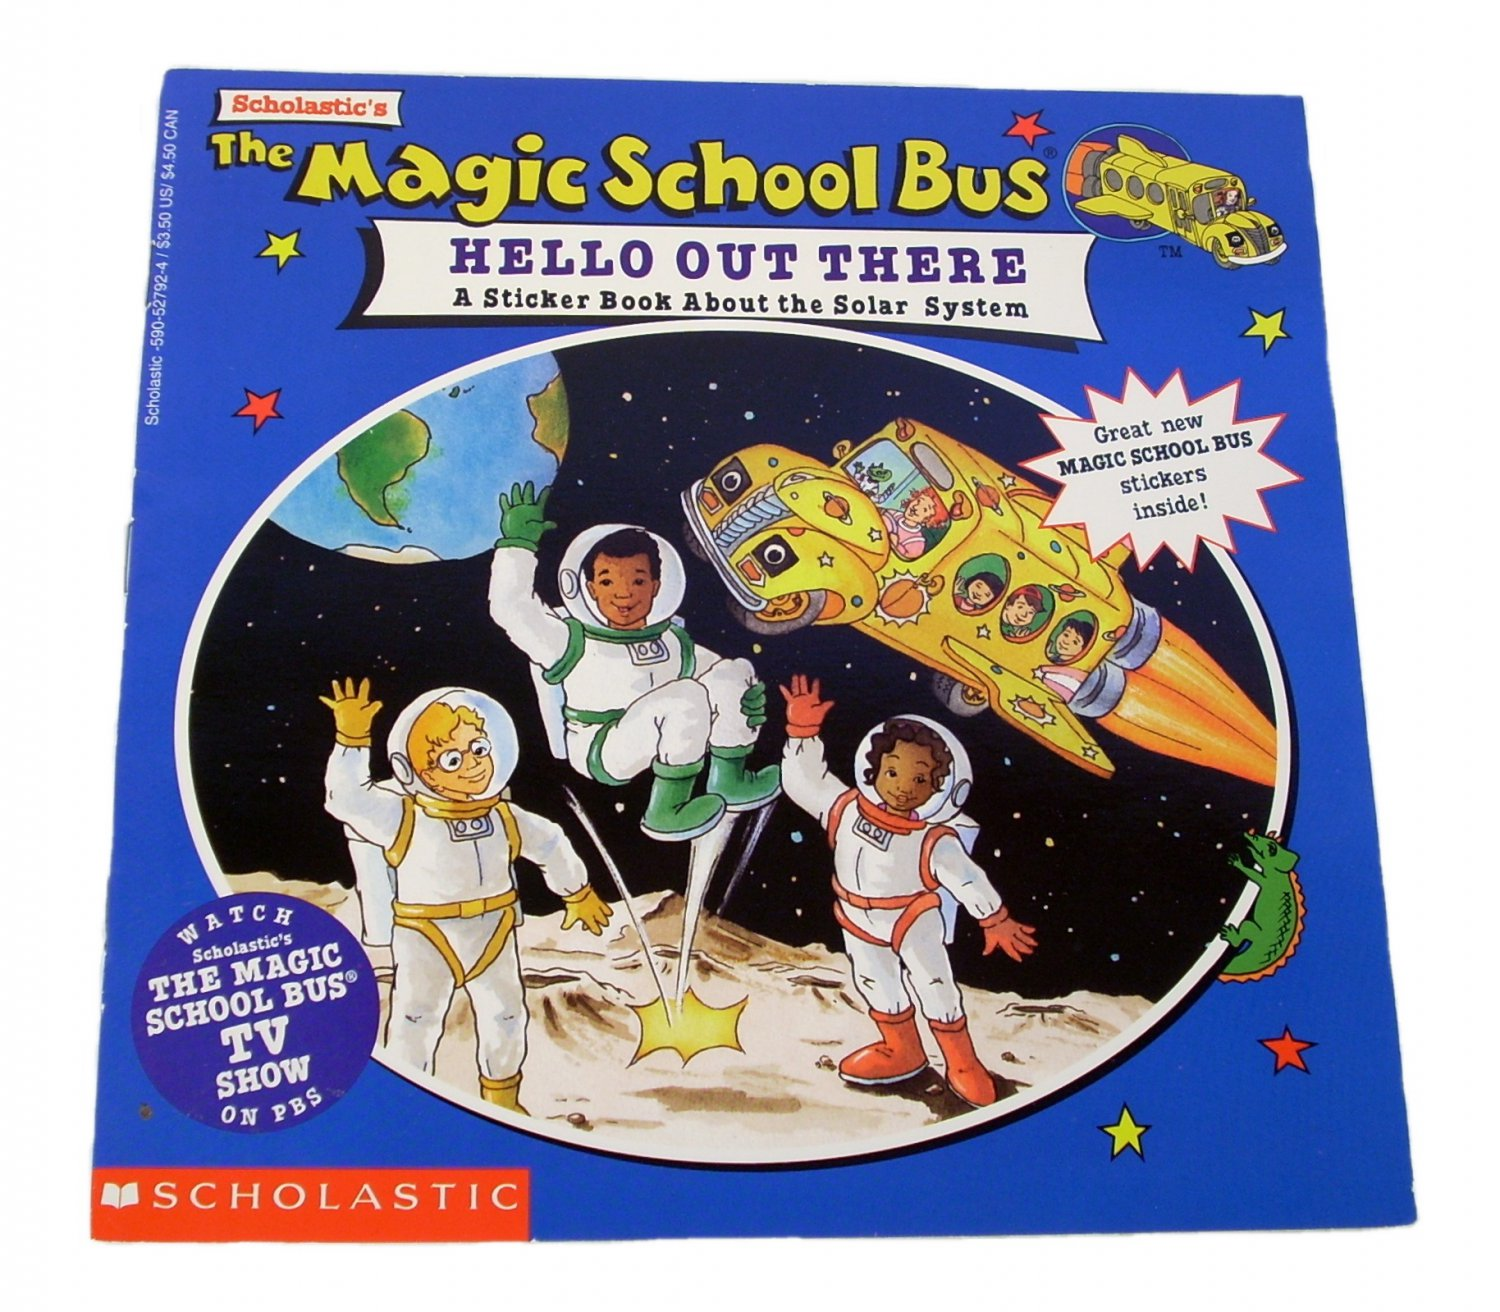 The Magic School Bus Hello Out There by Joanna Cole 1995 Paperback